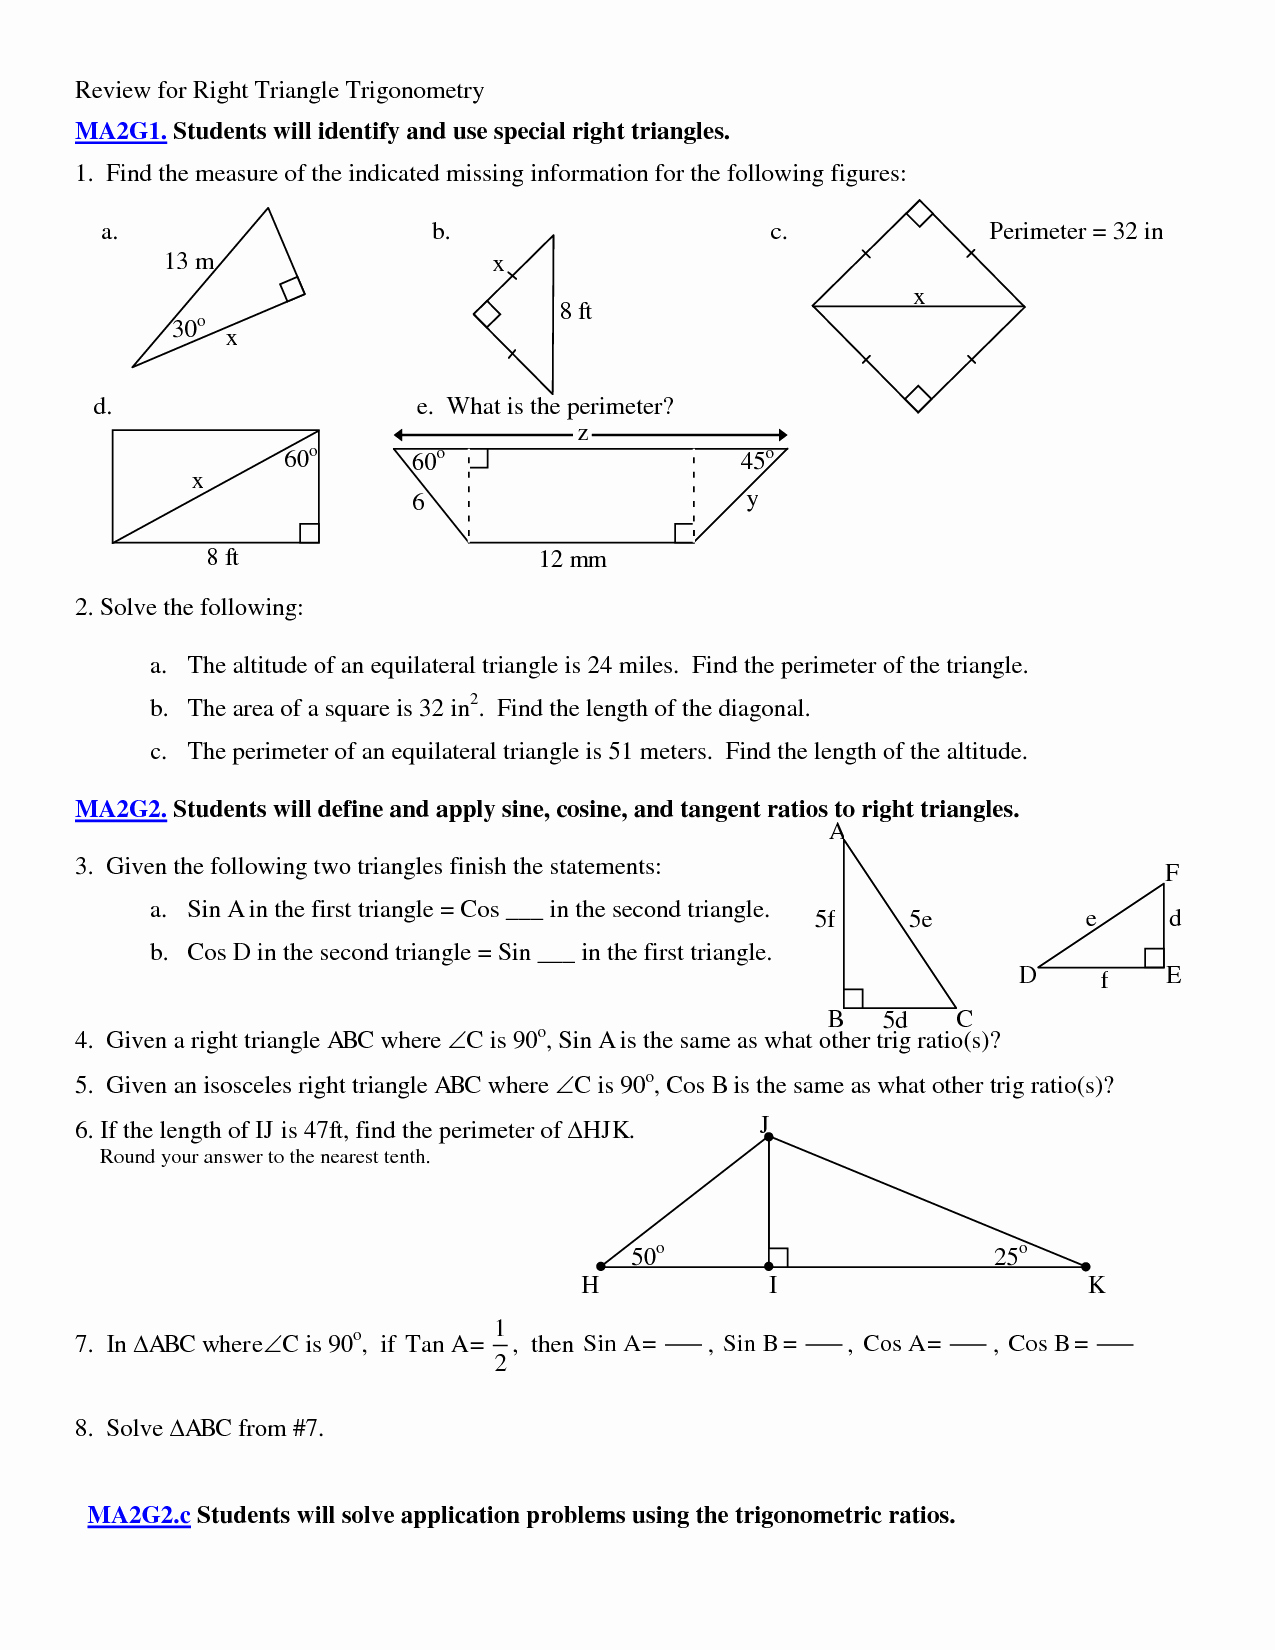 Trigonometry Word Problems Worksheet Answers Unique 5 Best Of Applications Trigonometry Worksheet